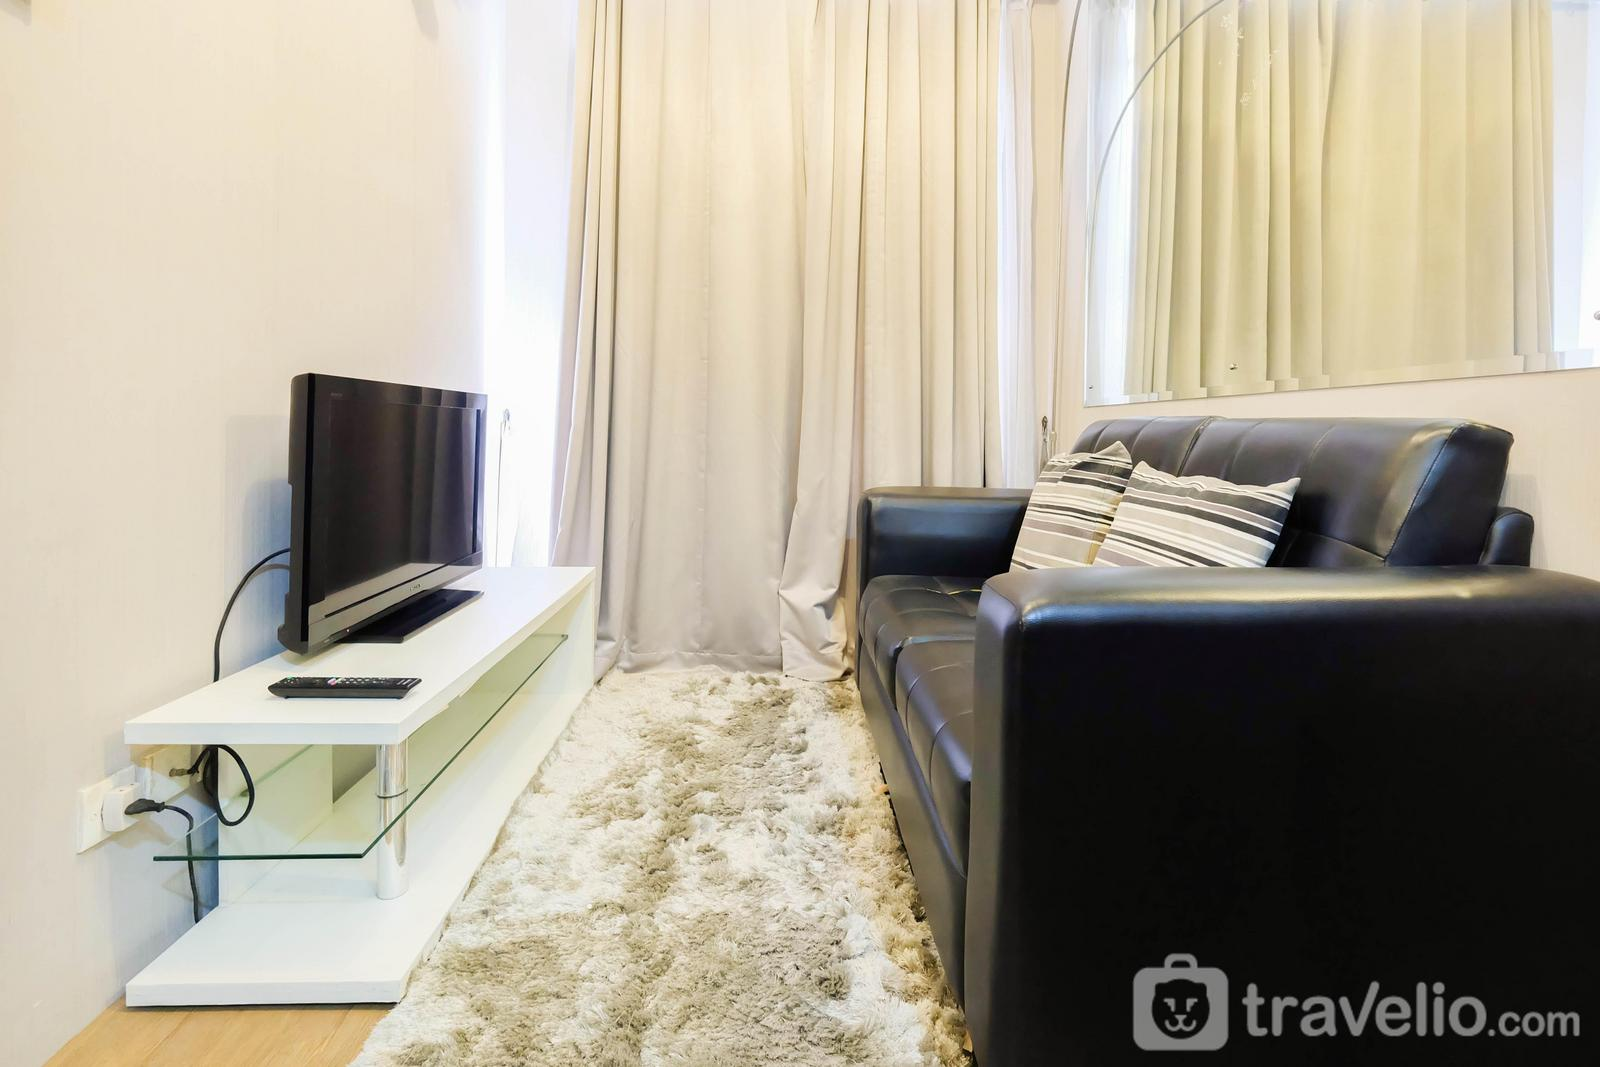 Gardenia Boulevard  - Homey 1BR Gardenia Boulevard Apartment near Pejaten Village By Travelio